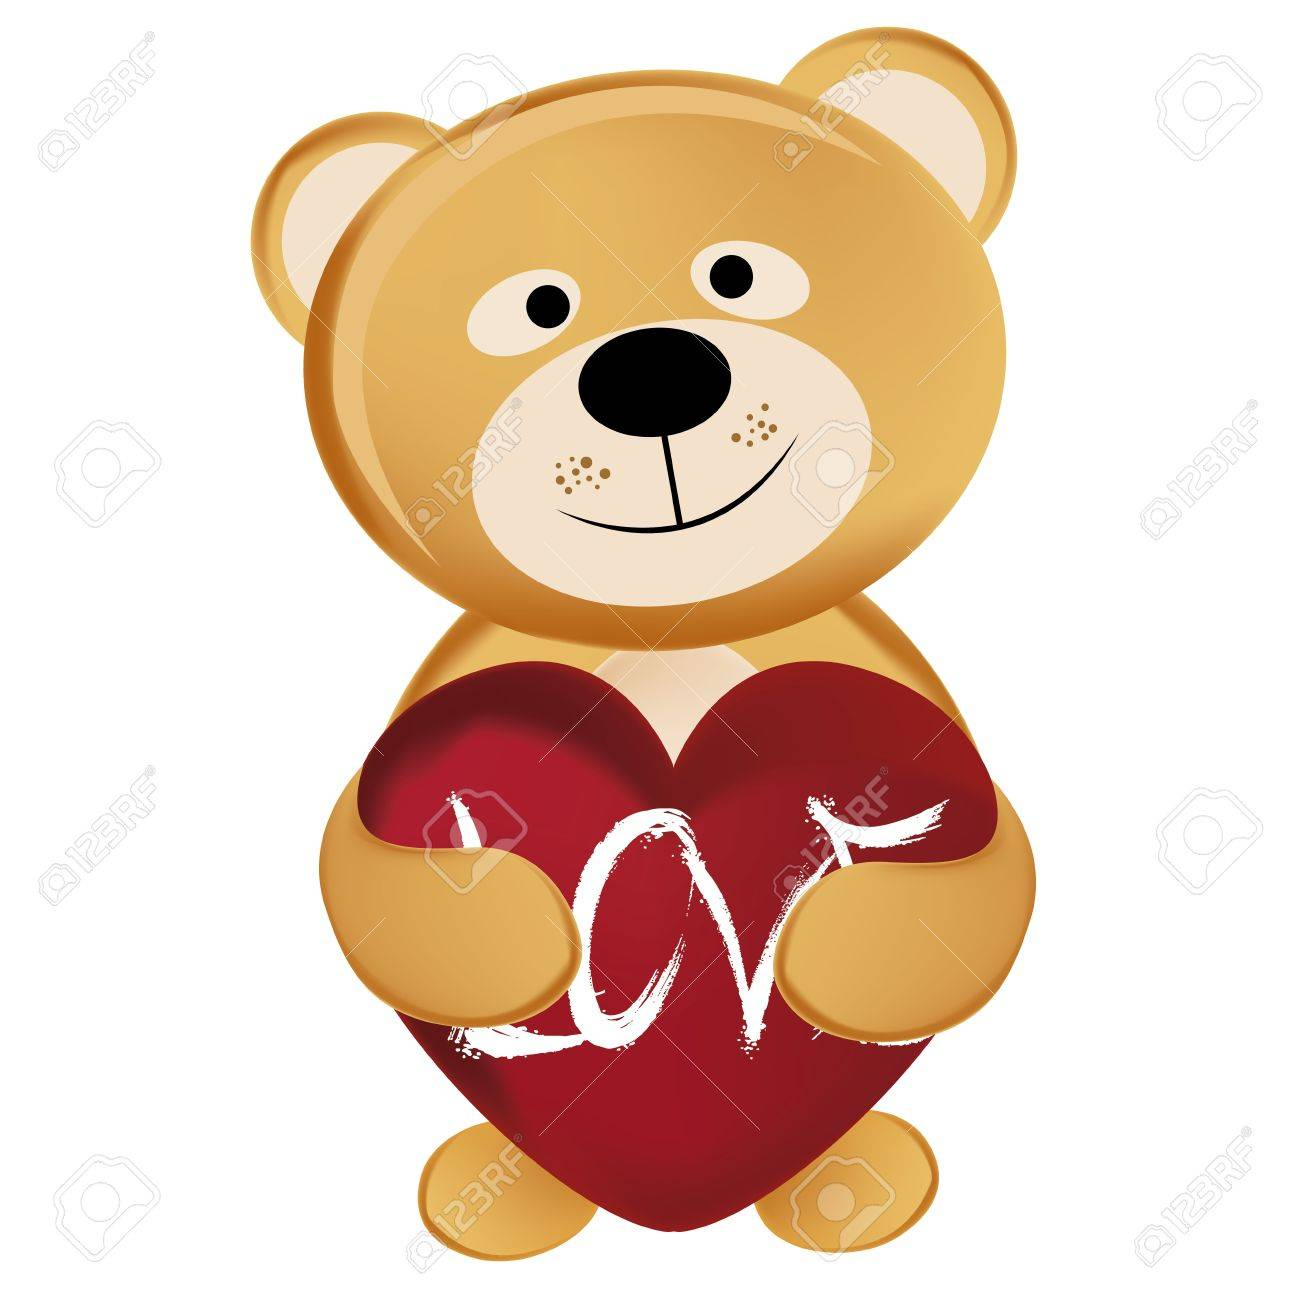 A Single Teddy Bear Hugging A Big Heart In Valentineu0027s Day Stock Vector    21567483